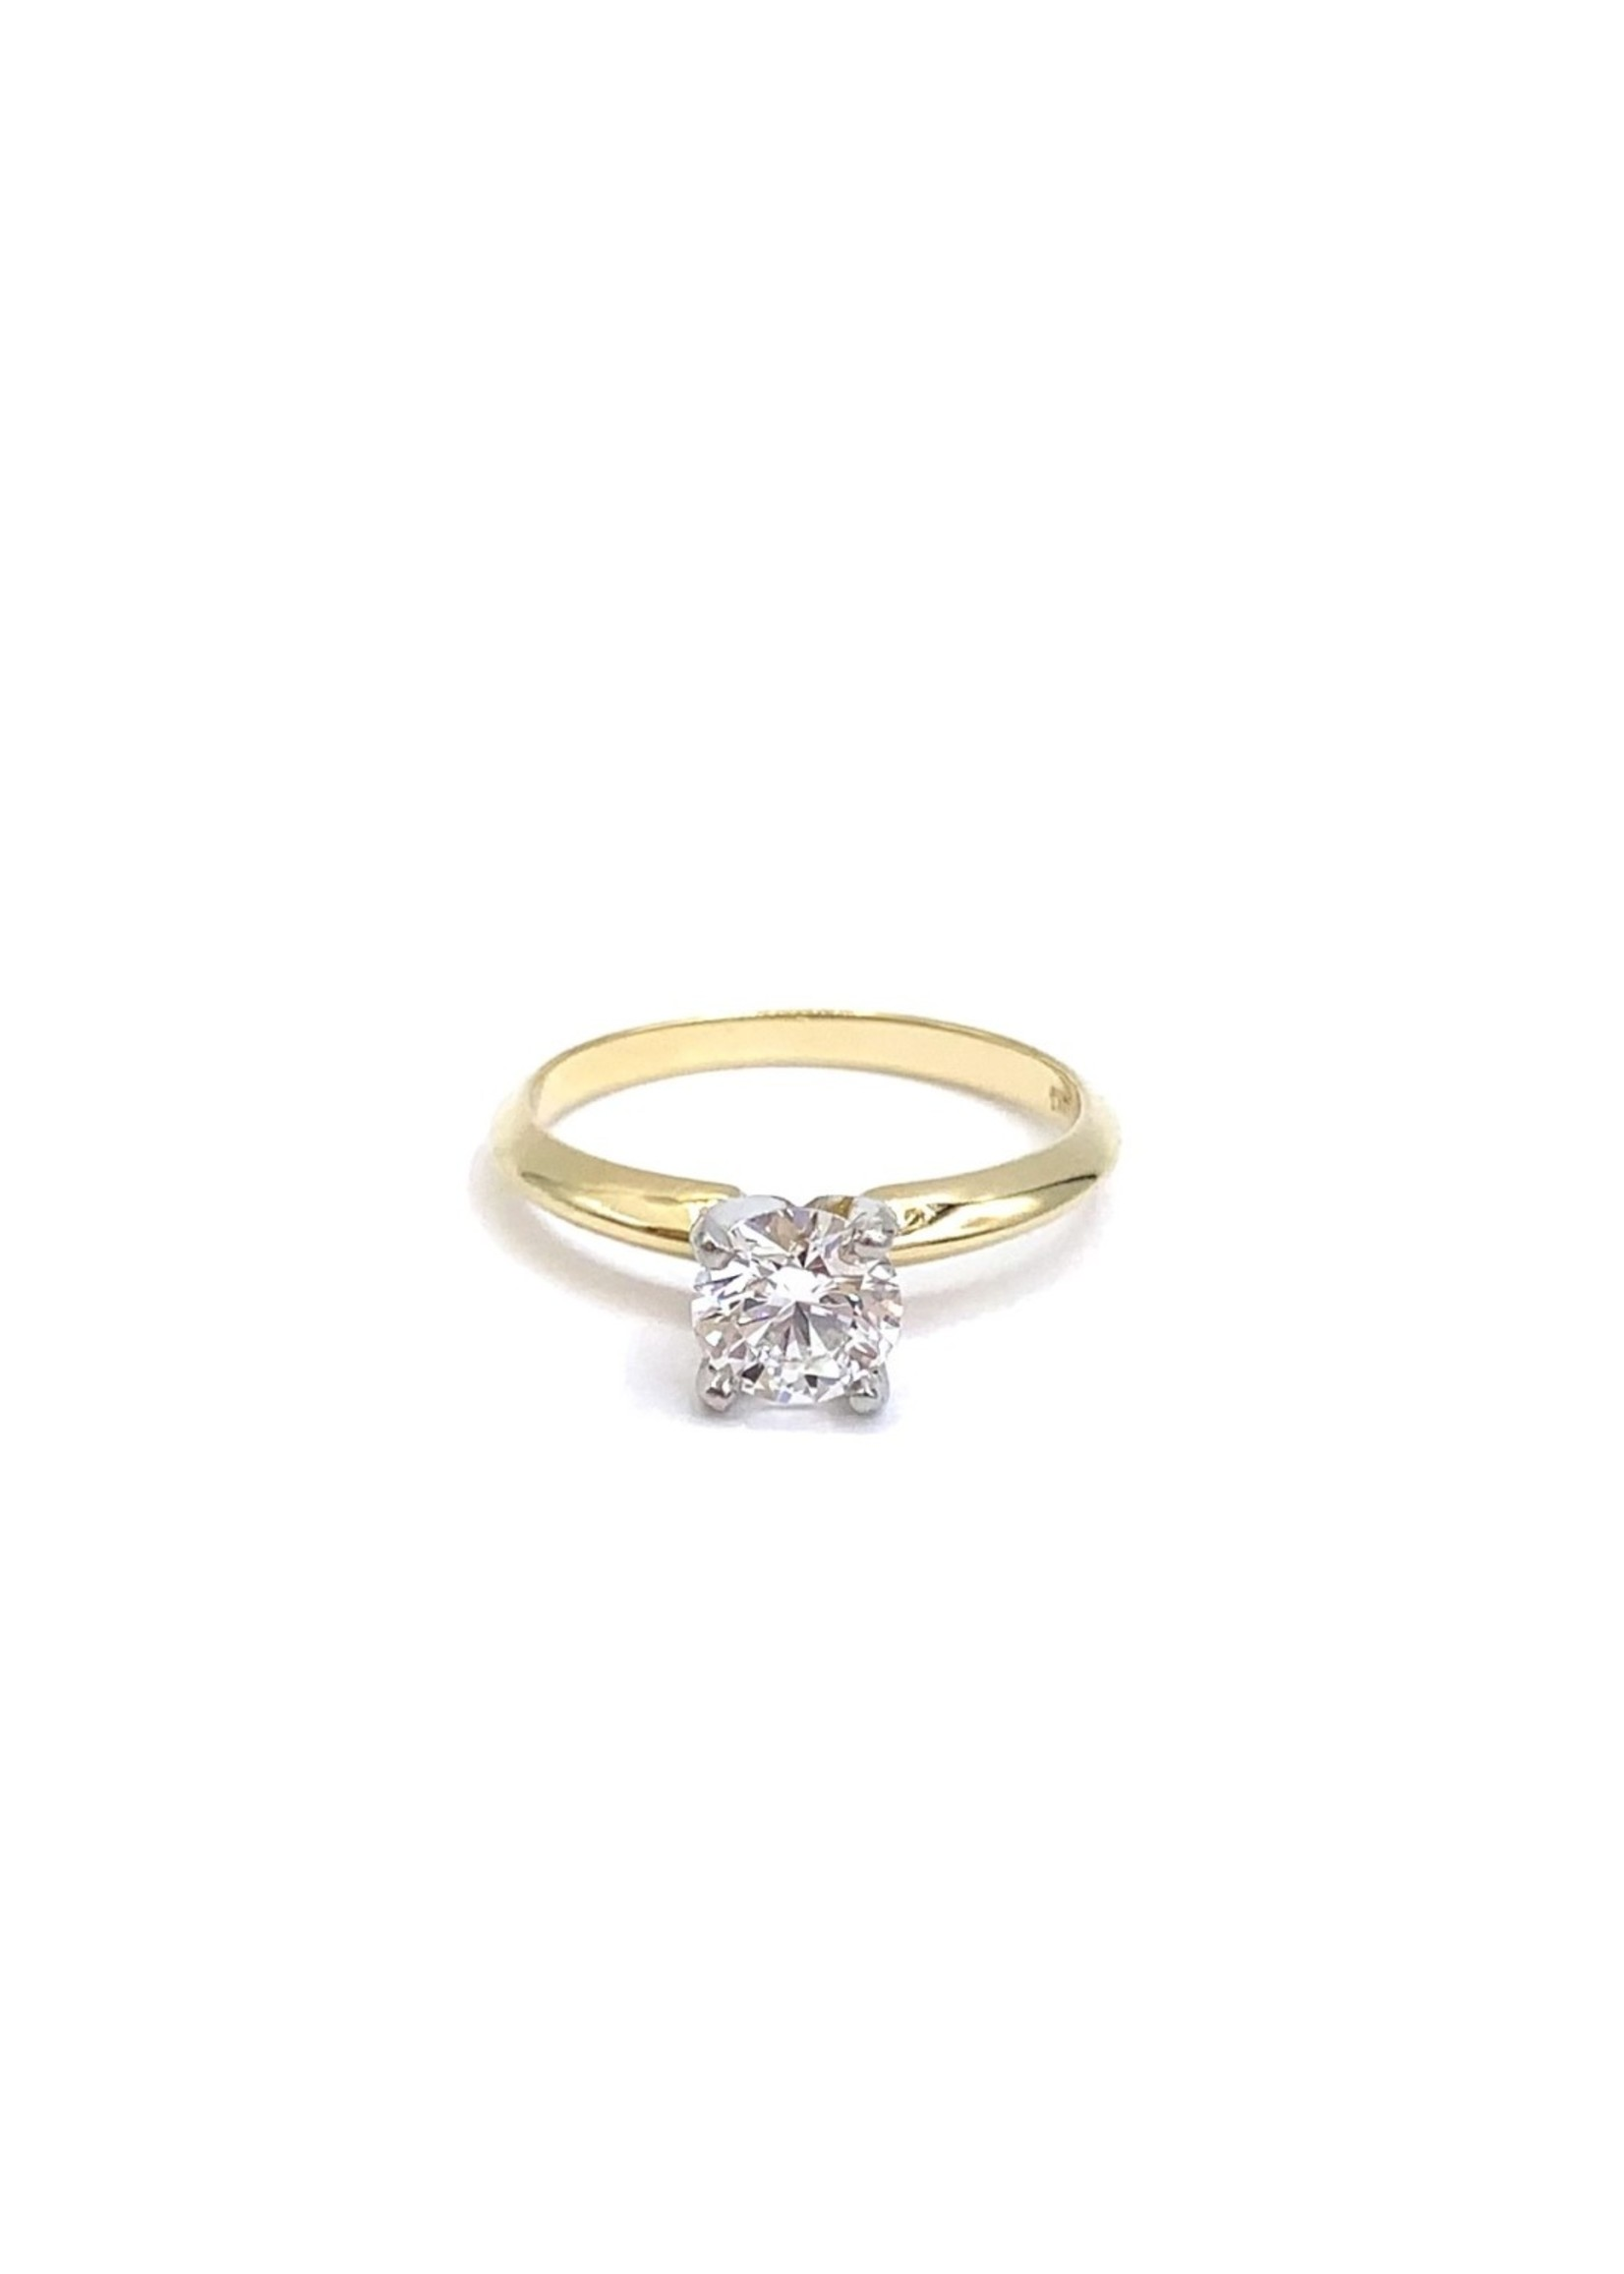 CJ Designs Eng 14kY solitaire w/ .67ct SI1 G Col Dia, Plat prongs